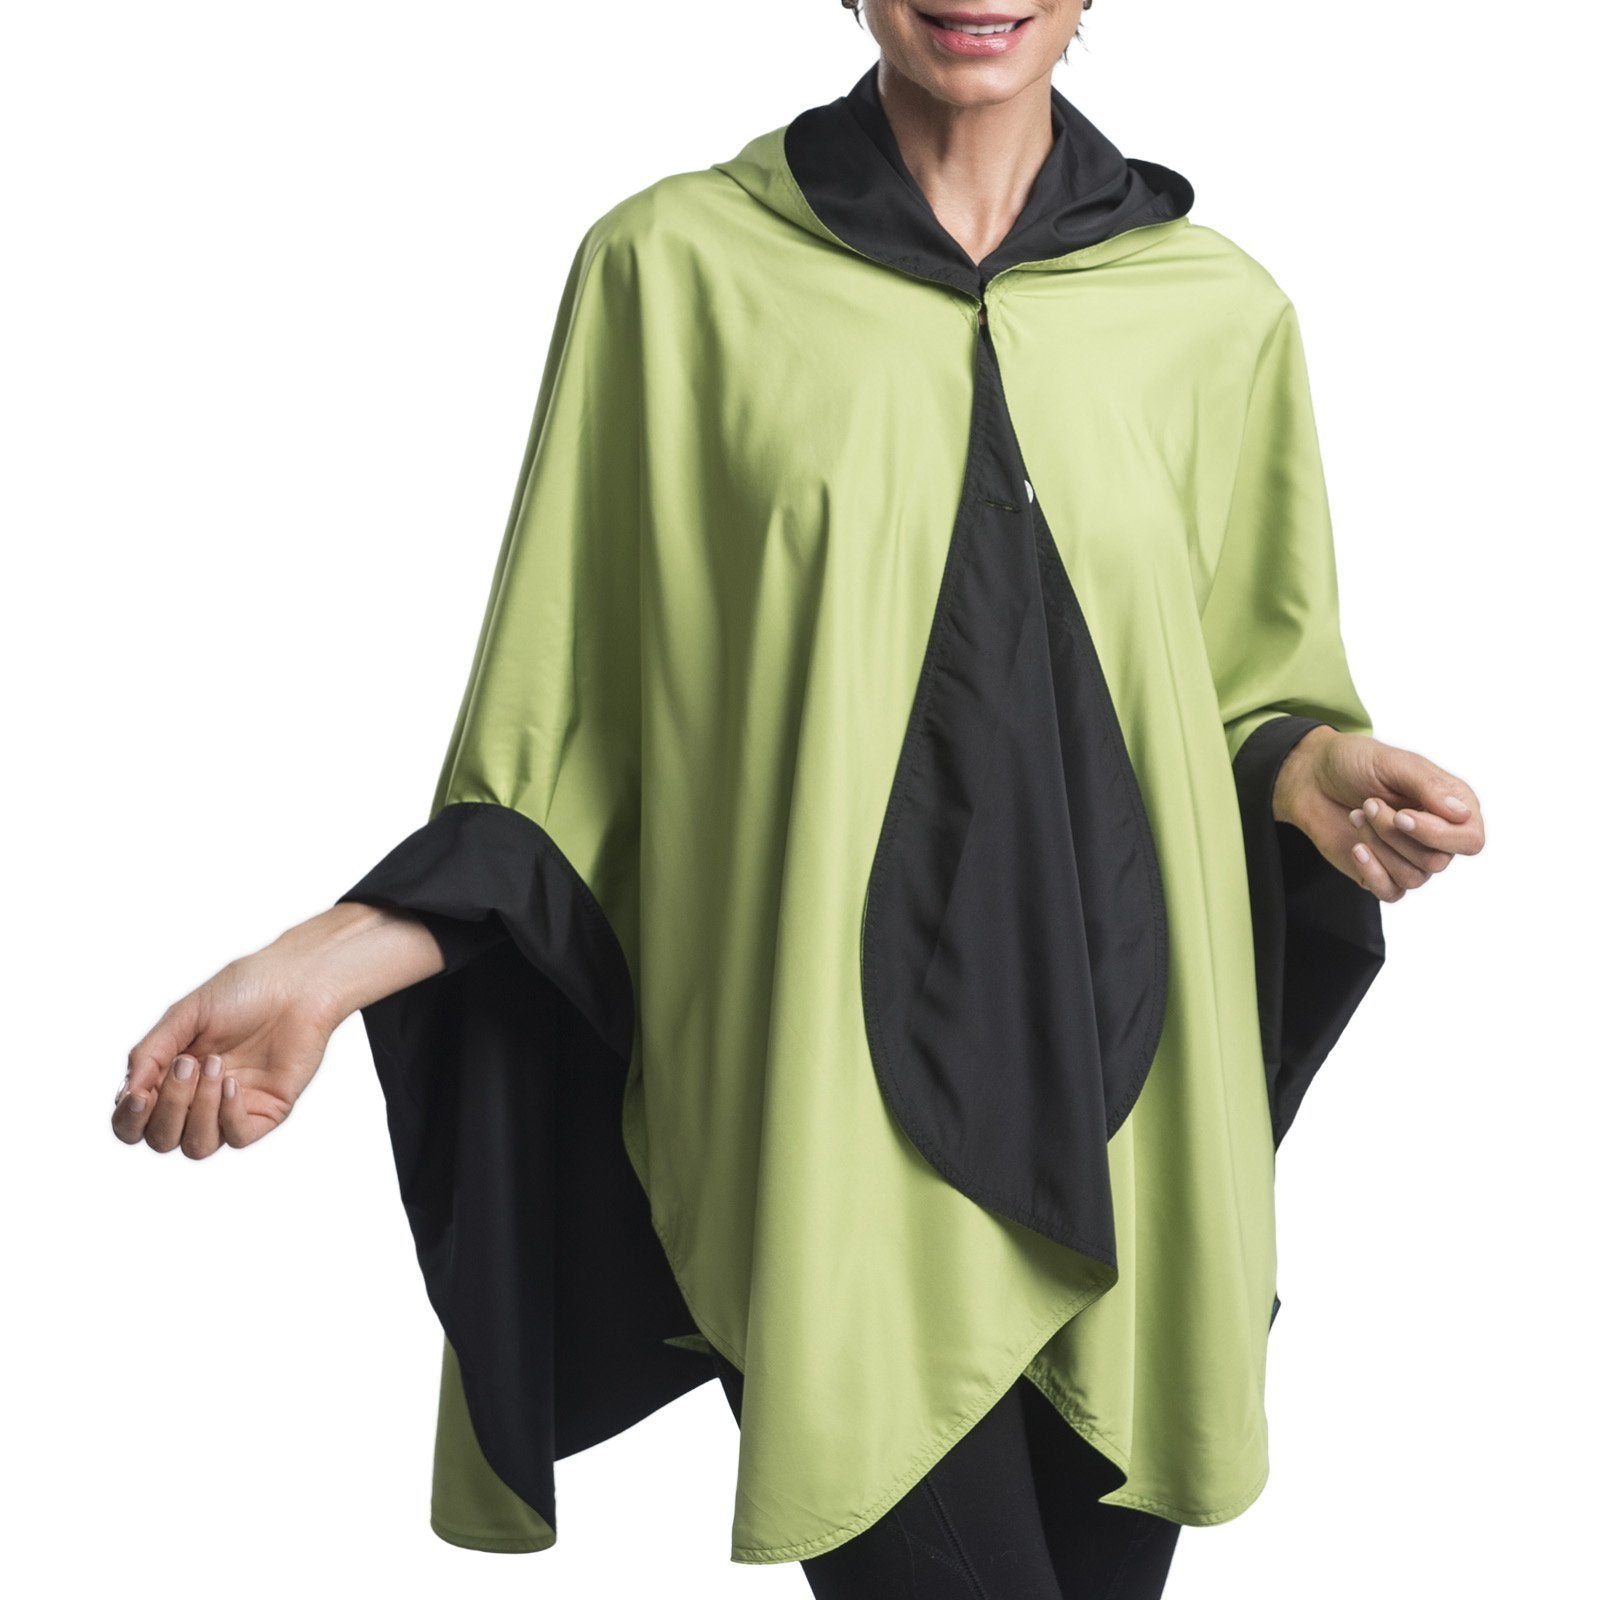 Women wearing a Black & Greenery RainCaper travel cape with the Black side out, revealing the Greenery color at the lapels and cuffs.